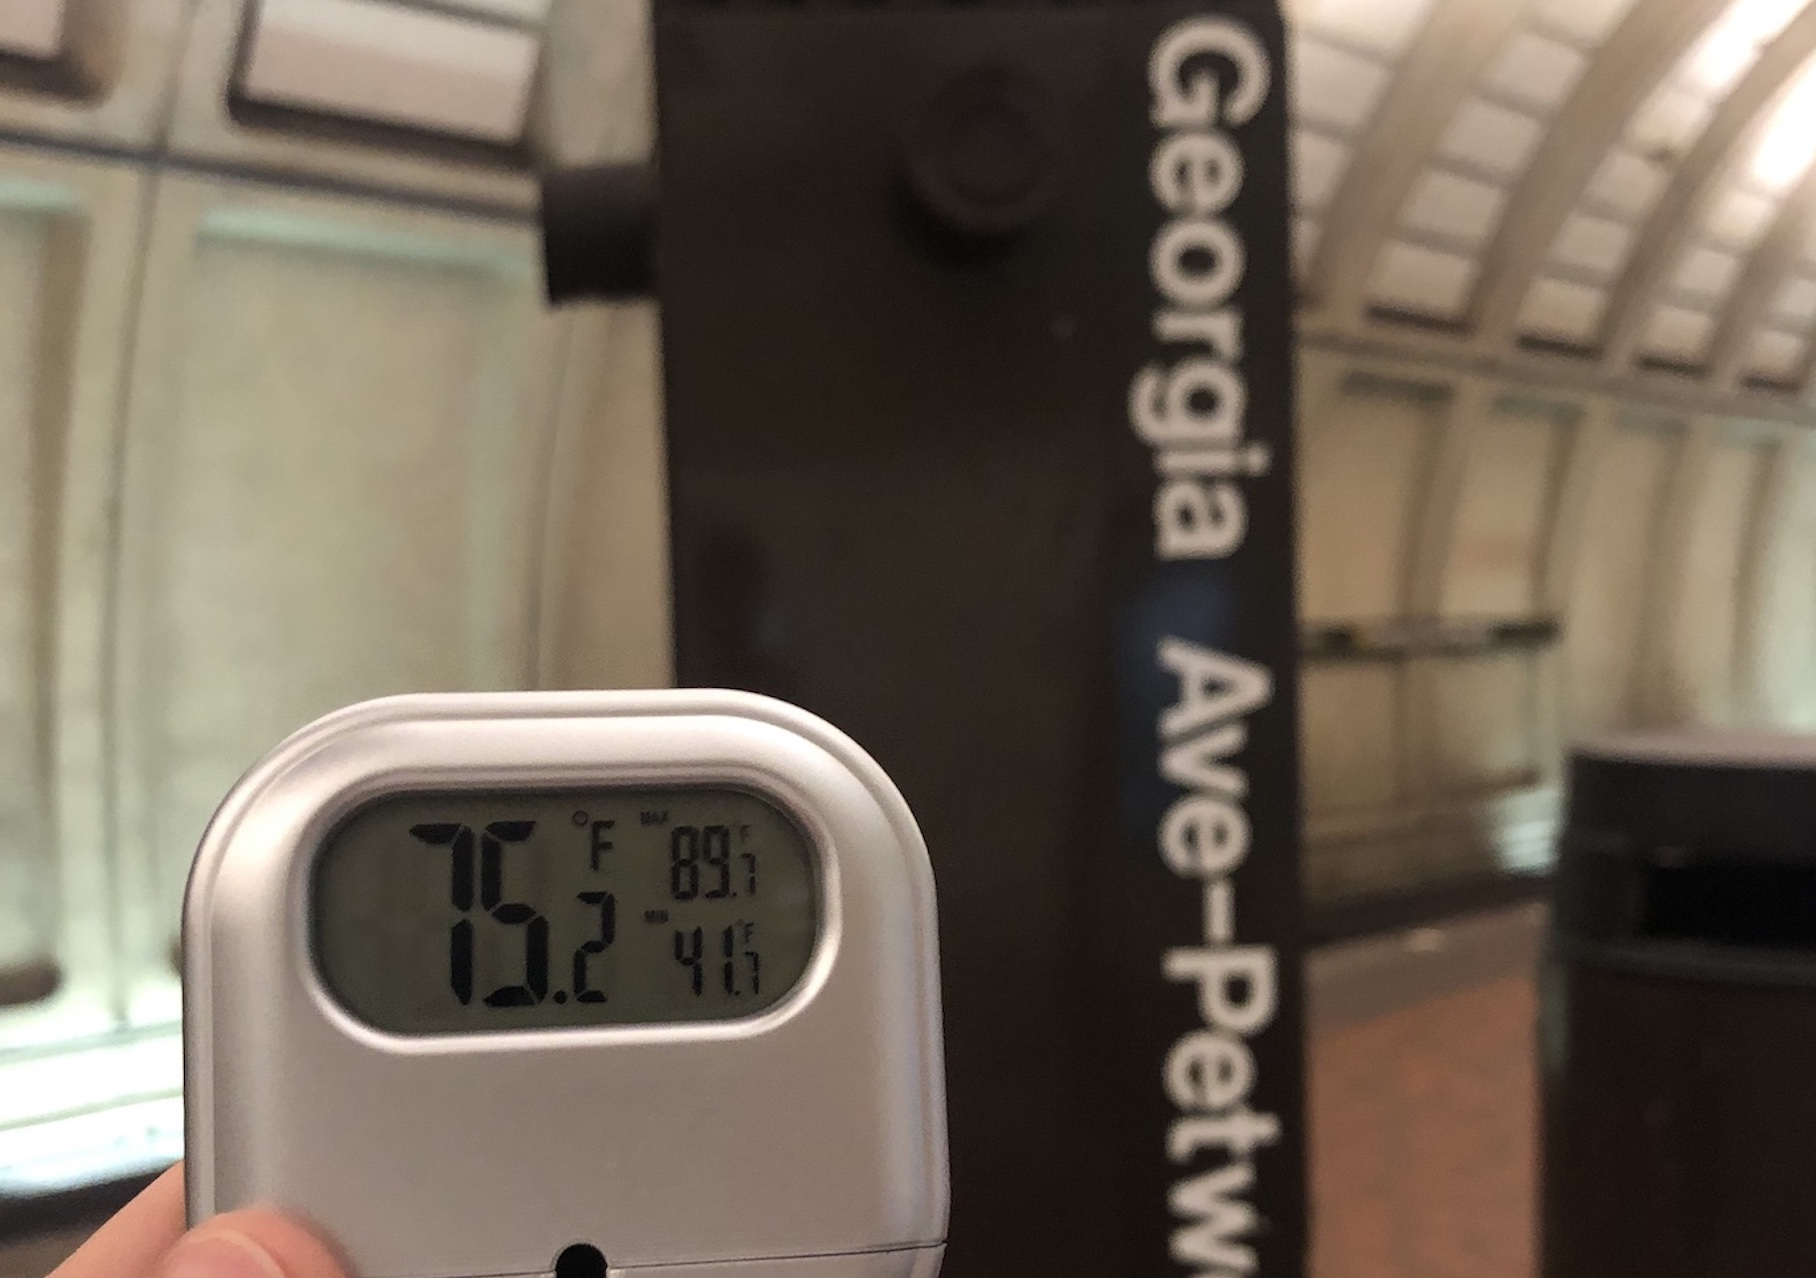 Just How Hot Are The Metro Stations During This Heatwave?